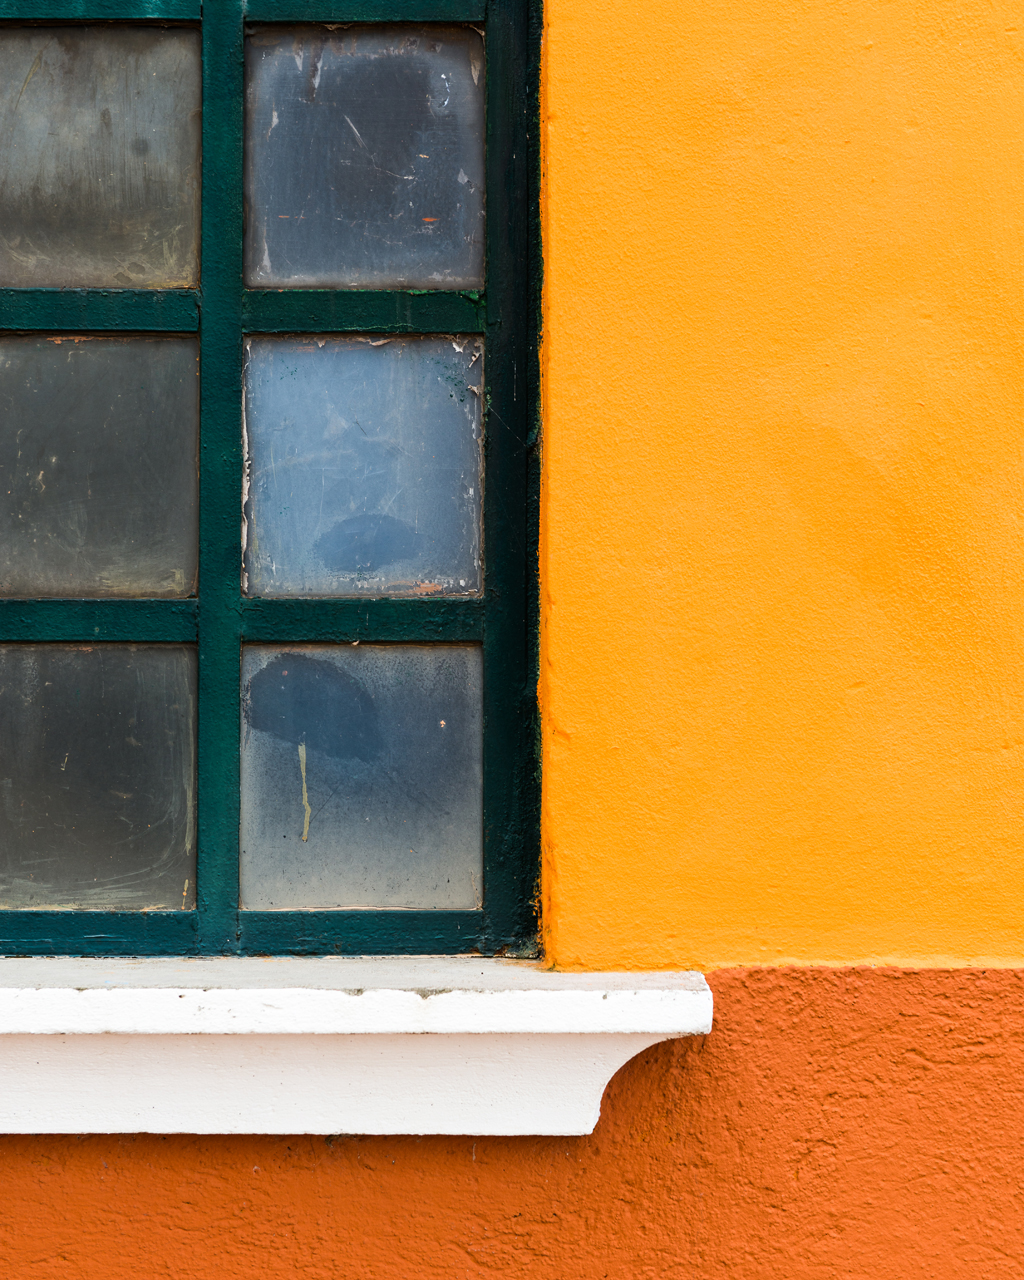 A Window in Burano